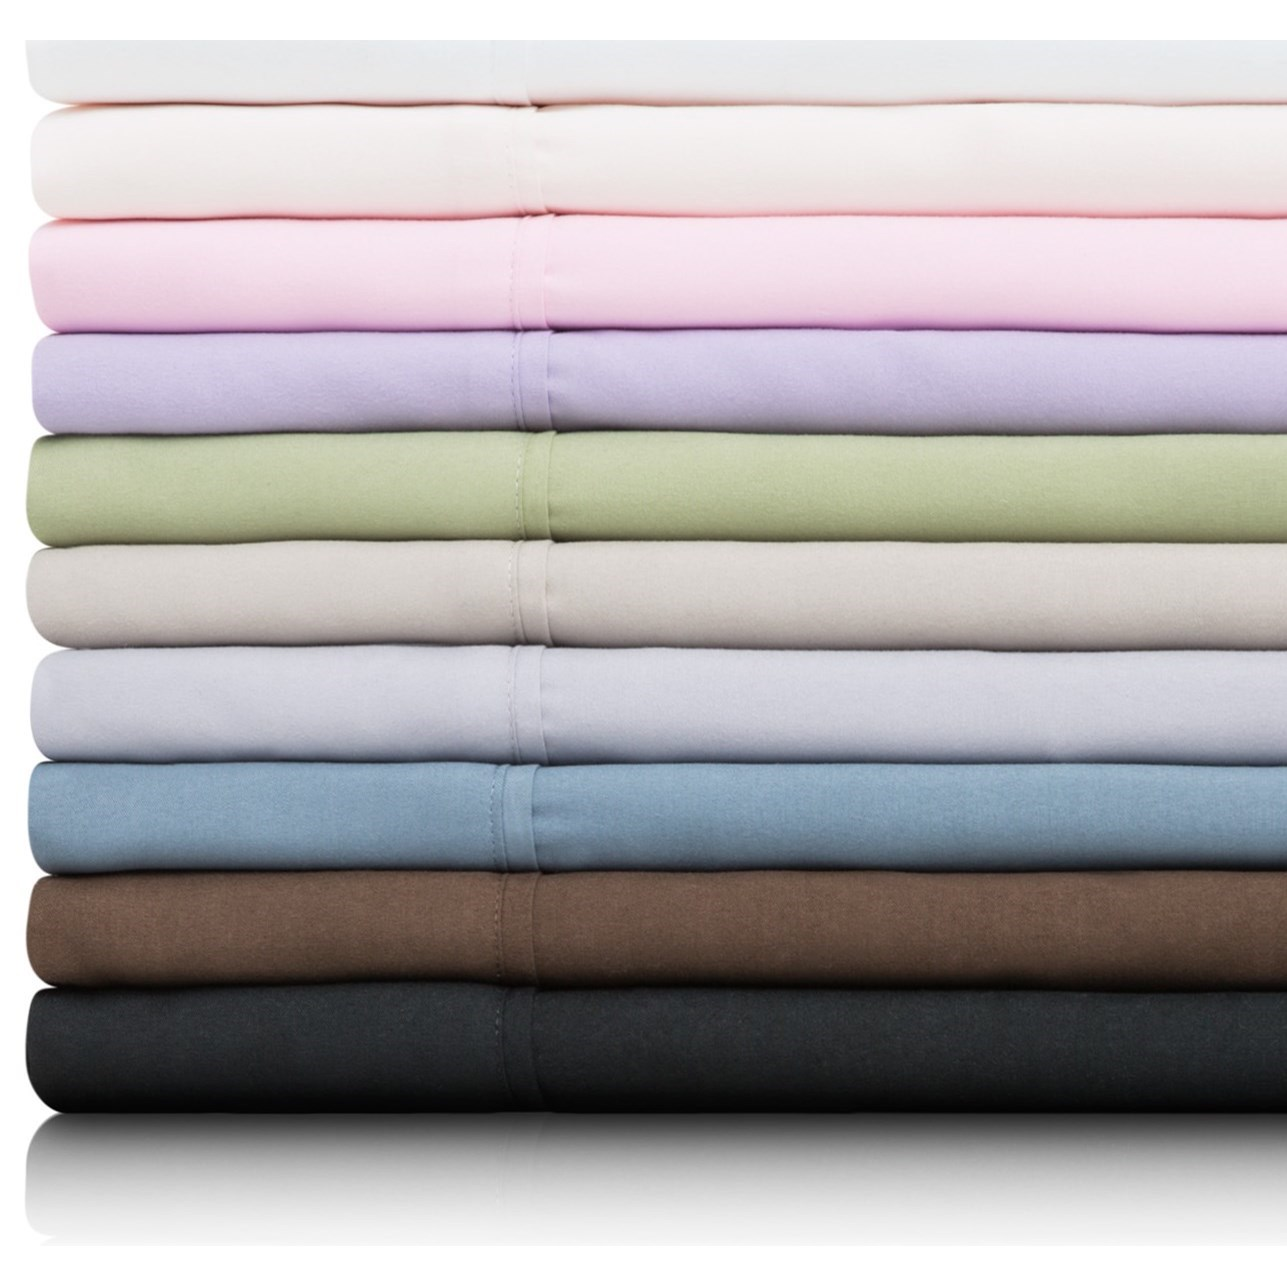 Malouf Brushed Microfiber Queen Woven™ Brushed Microfiber Sheet Set - Item Number: MA90QQDRMS